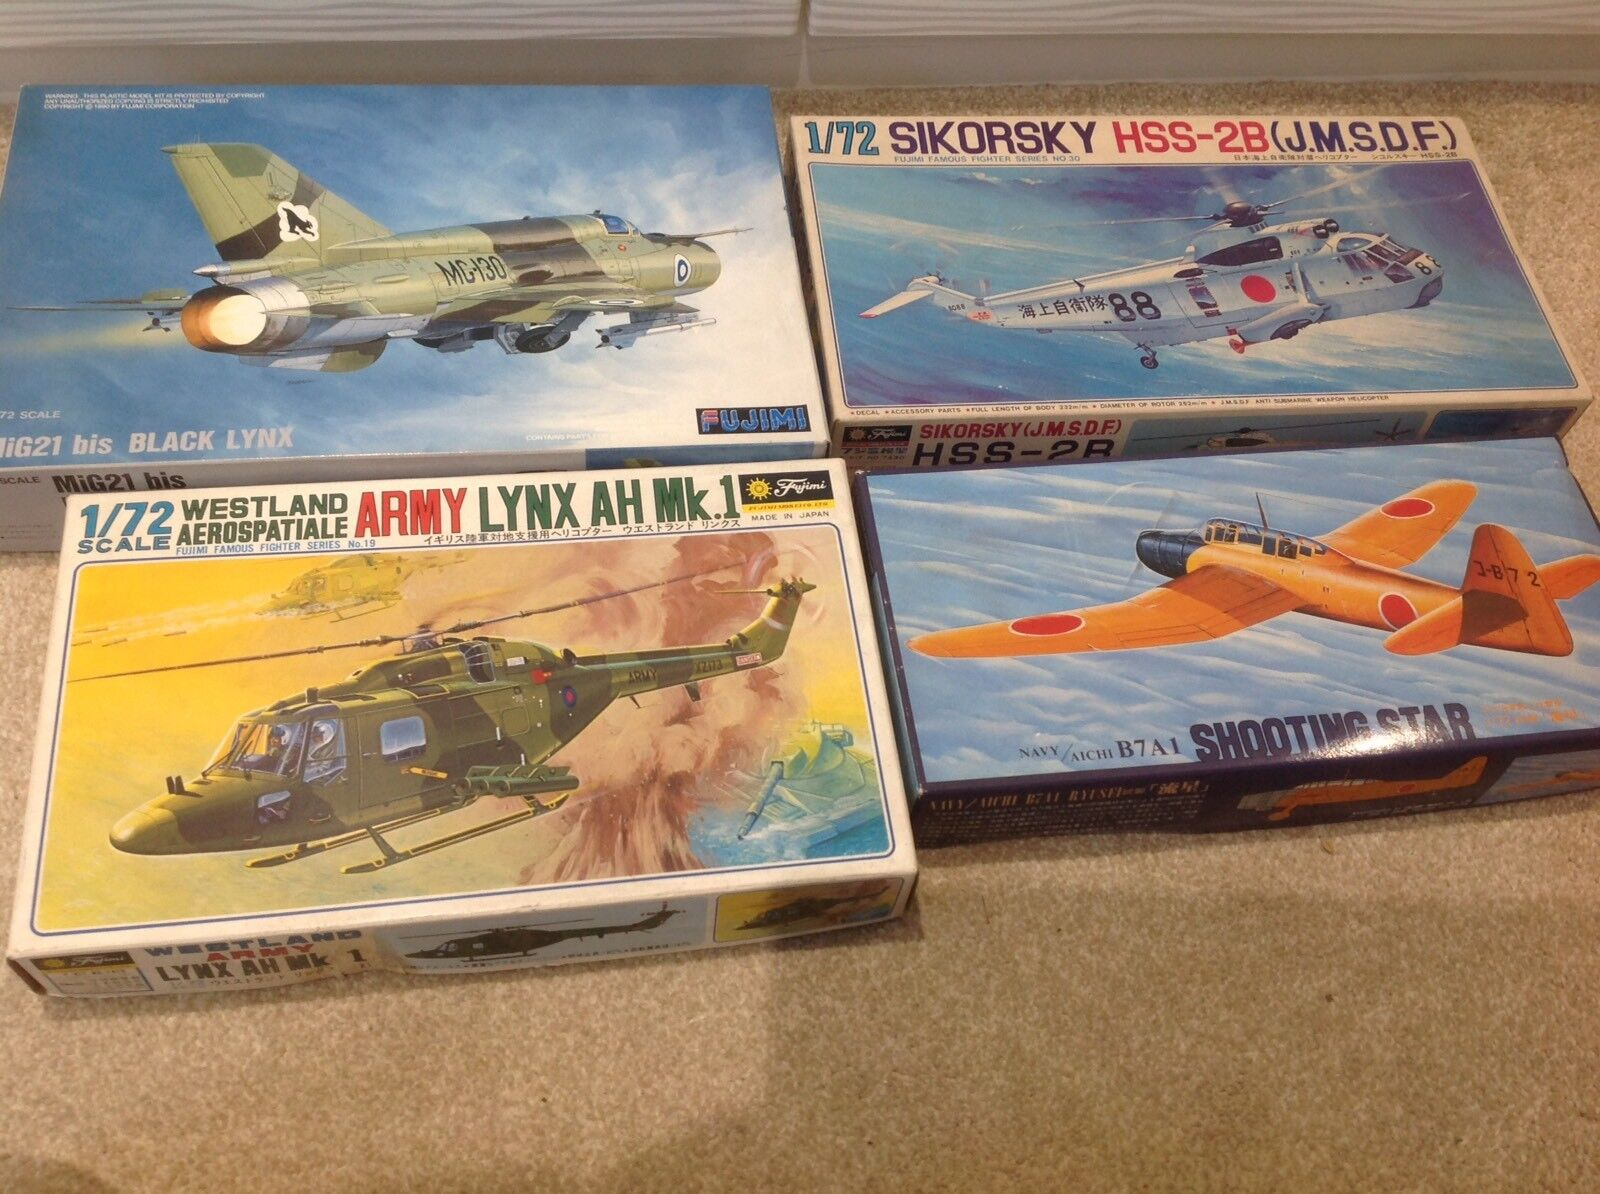 FUJIMIJOBLOT MODEL KITS COMPLETE UNMADE  HELICOPTERS AIRCRAFT 1 72